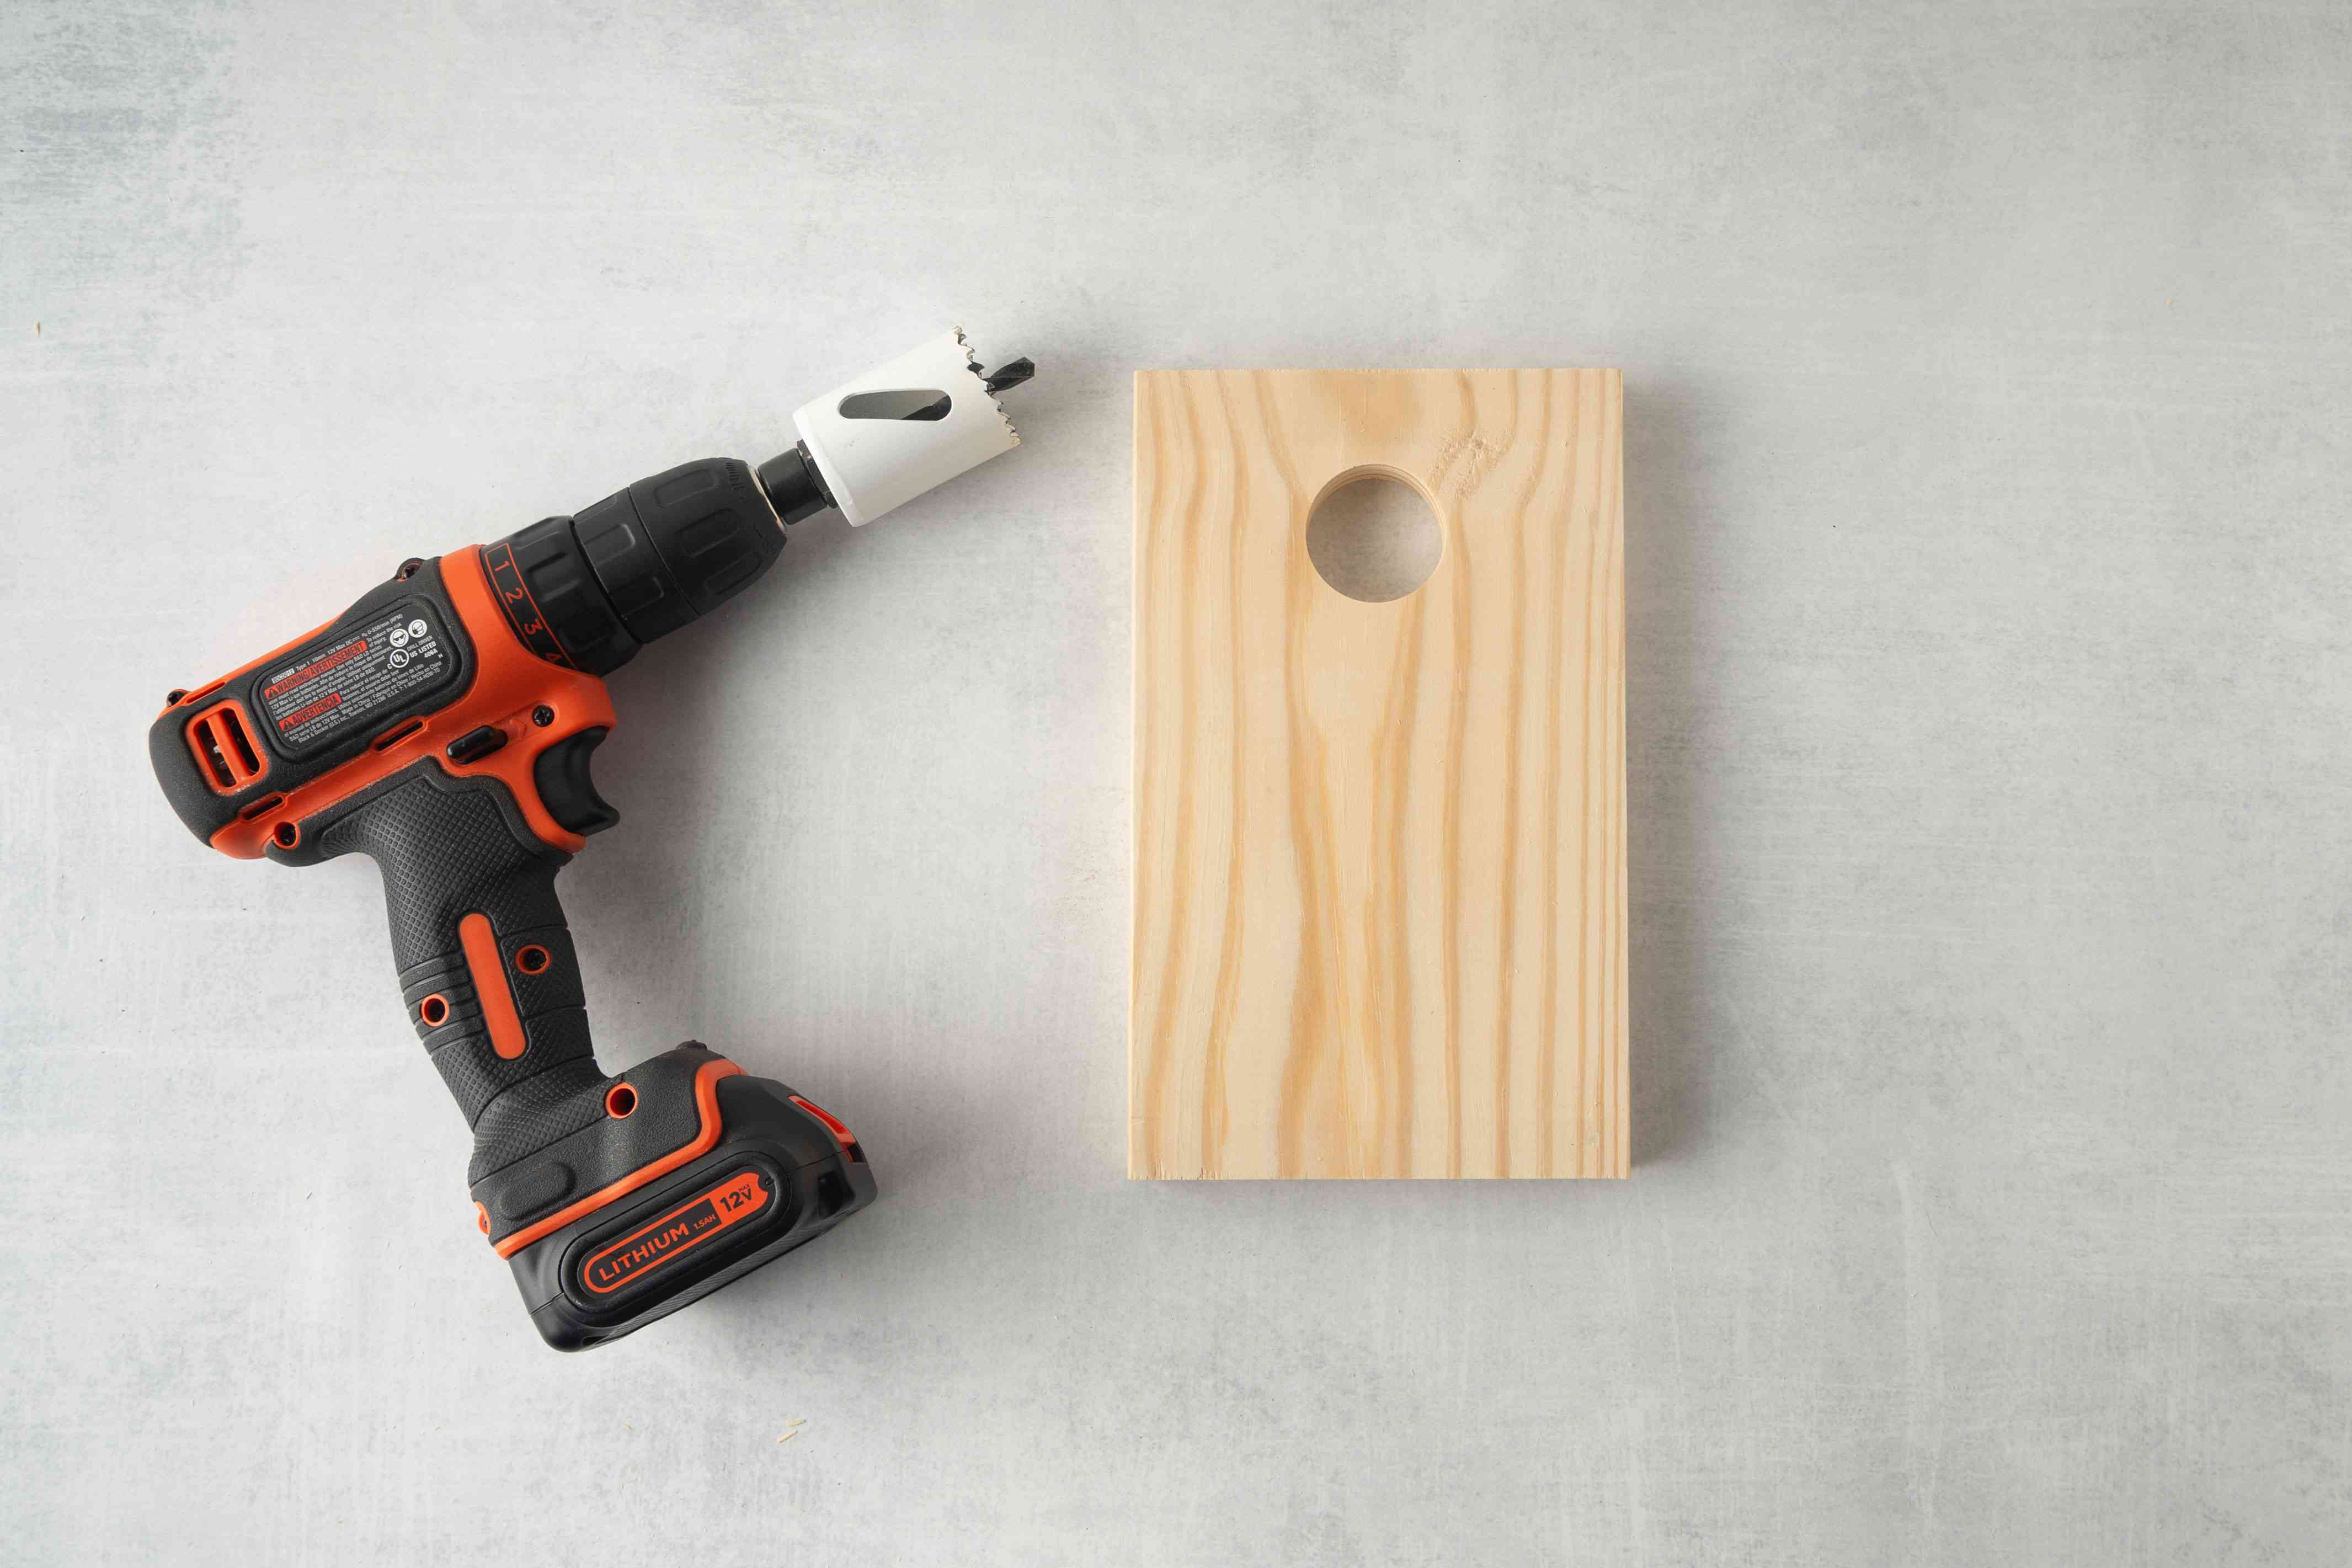 A drill with a hole saw attached next to a pineboard.